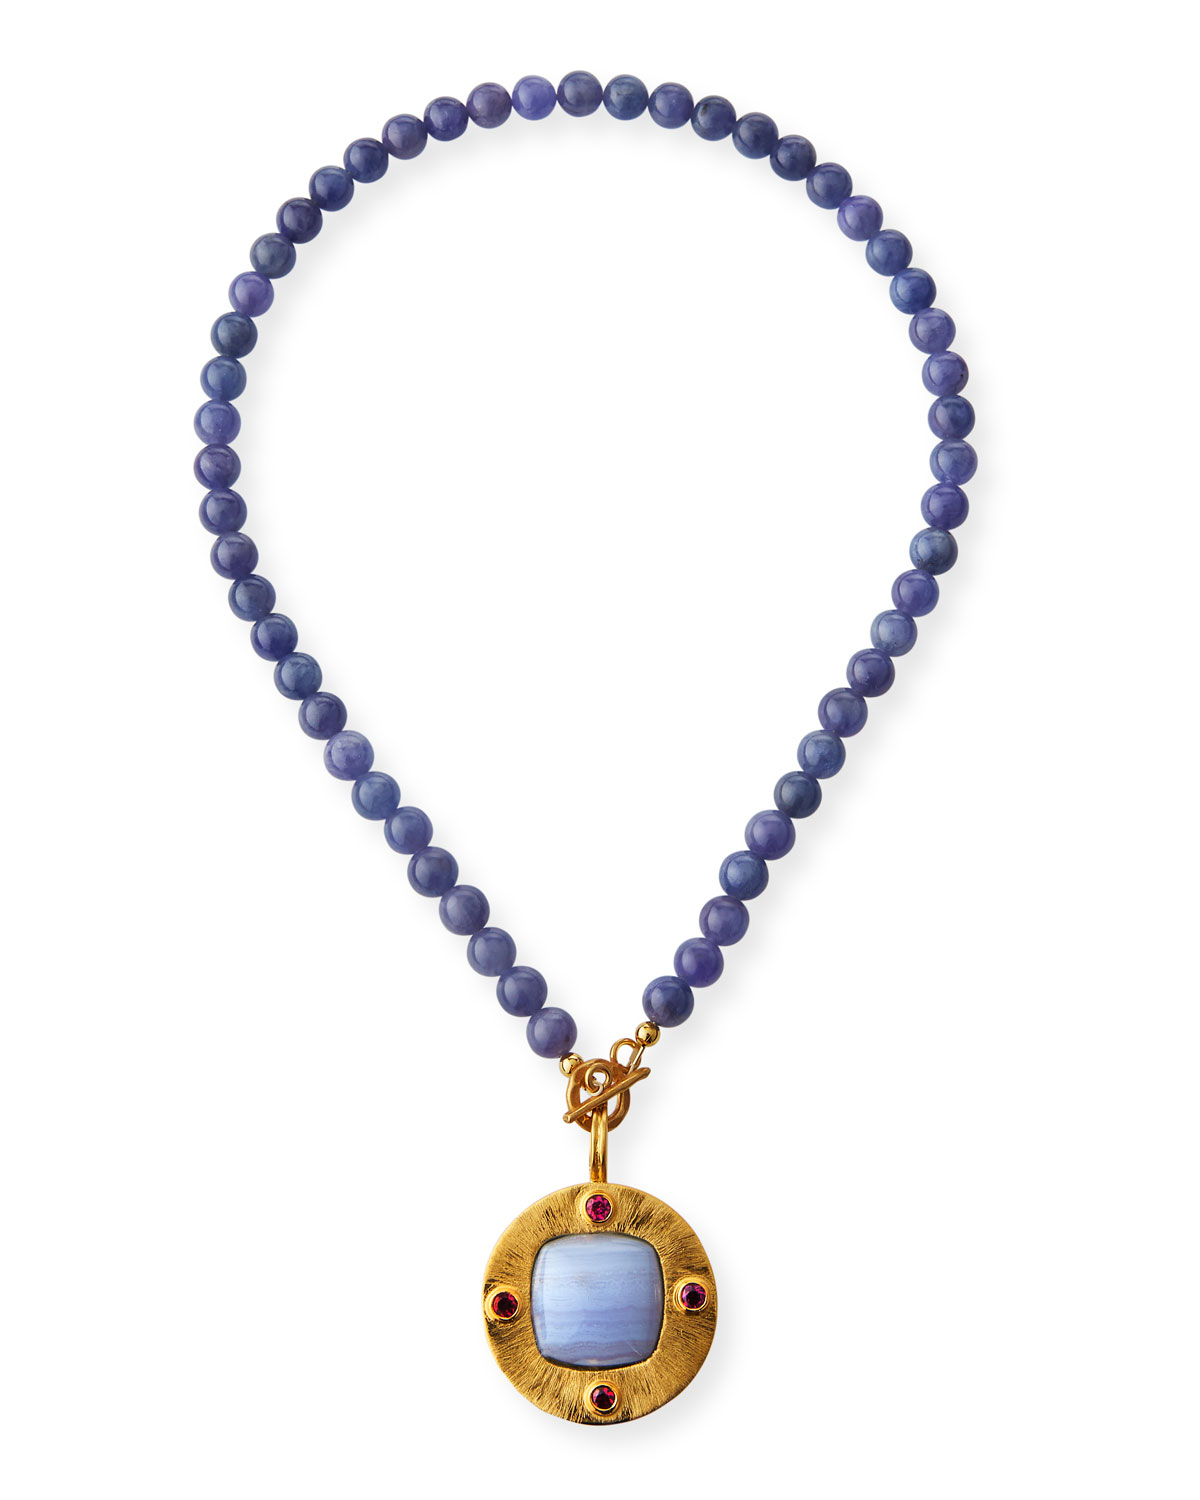 Dina Mackney Tanzanite and Disc Pendant Necklace